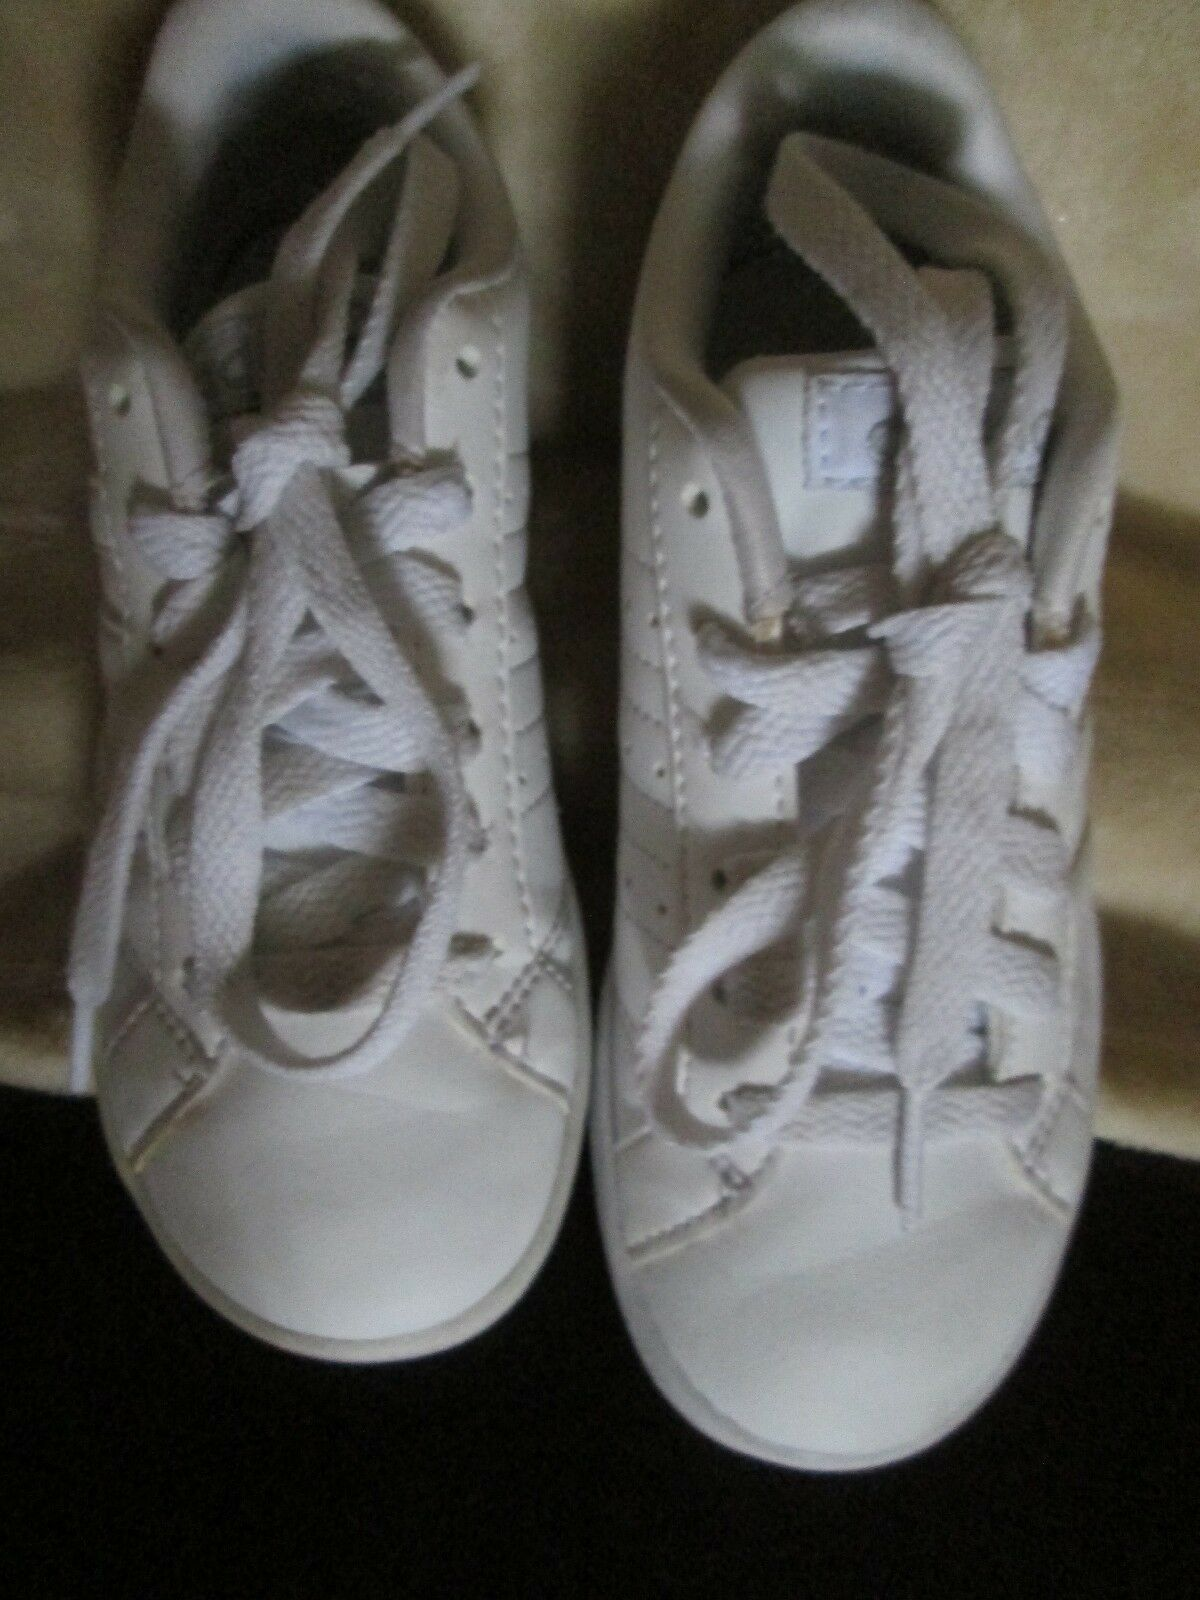 Girls Adidas Neo Comfort Footbed 12 White Striped Sneakers Shoes 12 Footbed 7a561c